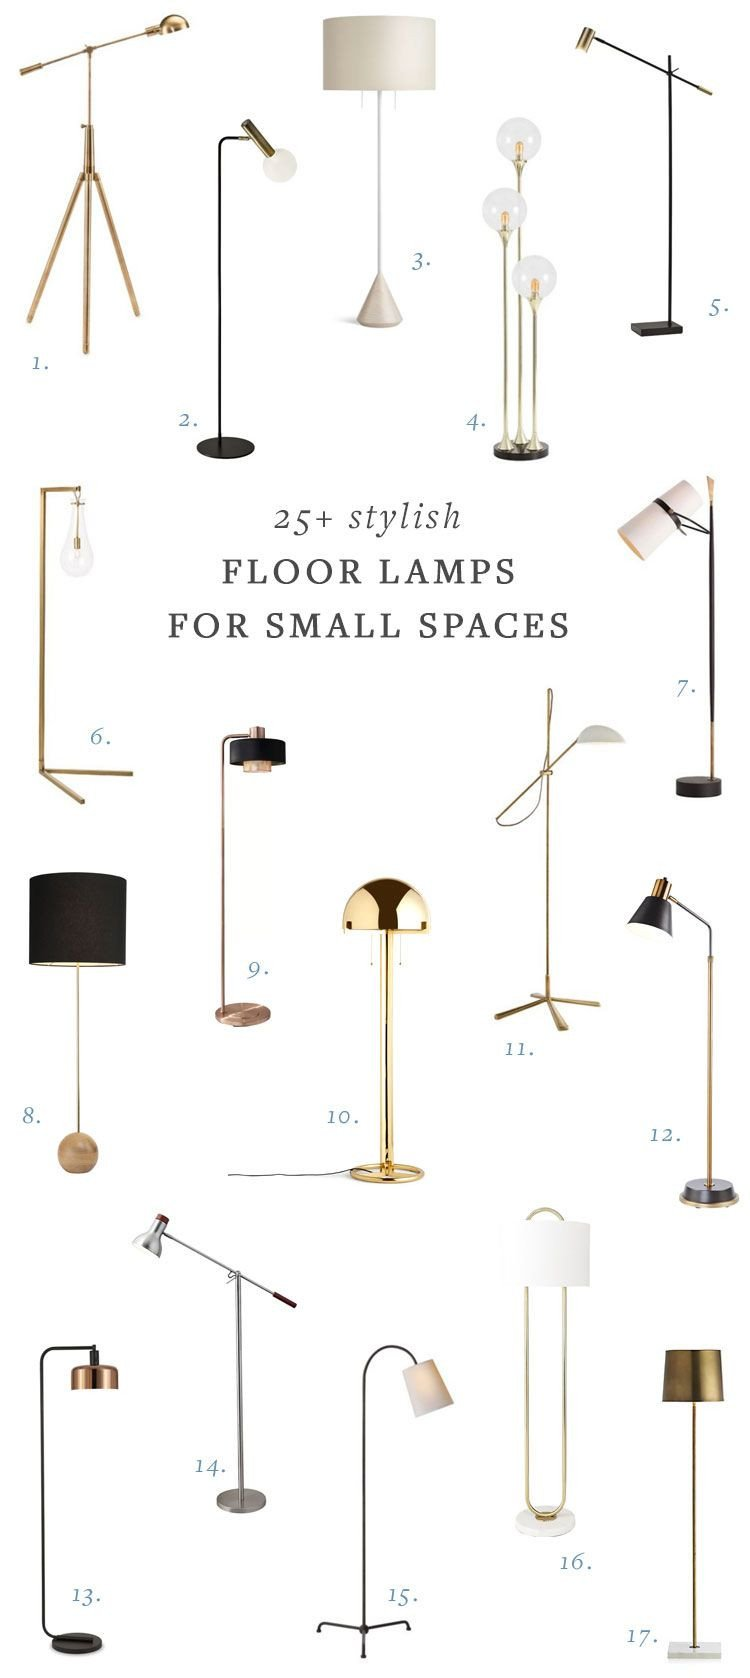 Cute Light for Bedroom New 25 Stylish Floor Lamps for Your Small Space